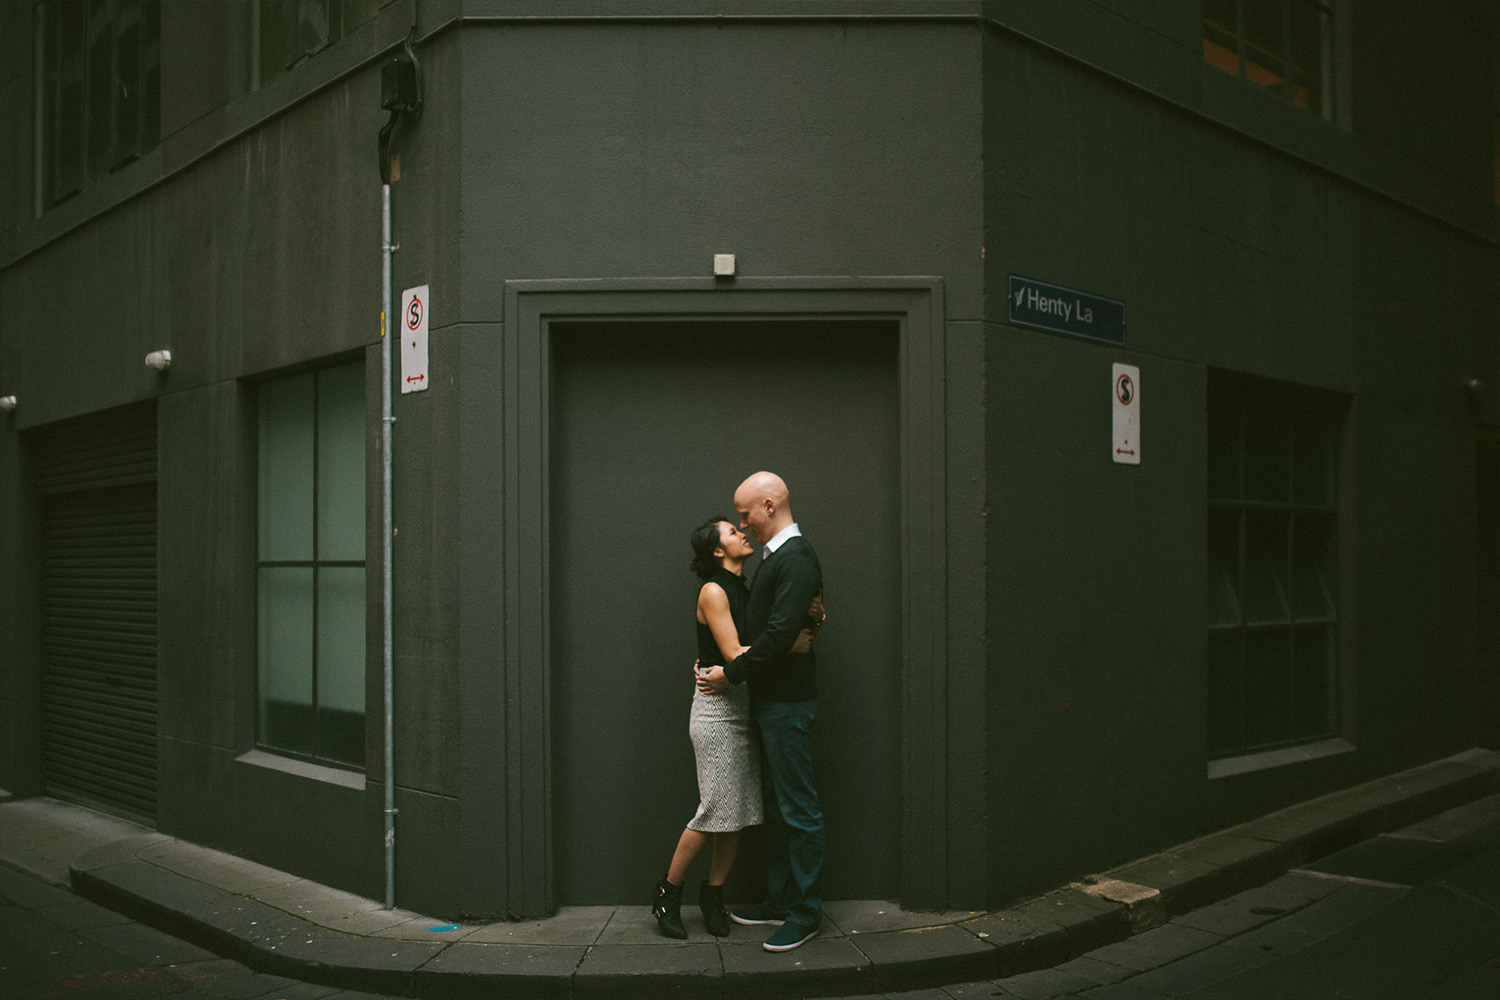 Elaine-Stephen-Engagement-Melbourne-Quirky-Urban-Engagement-Session-Wedding-Photography-22